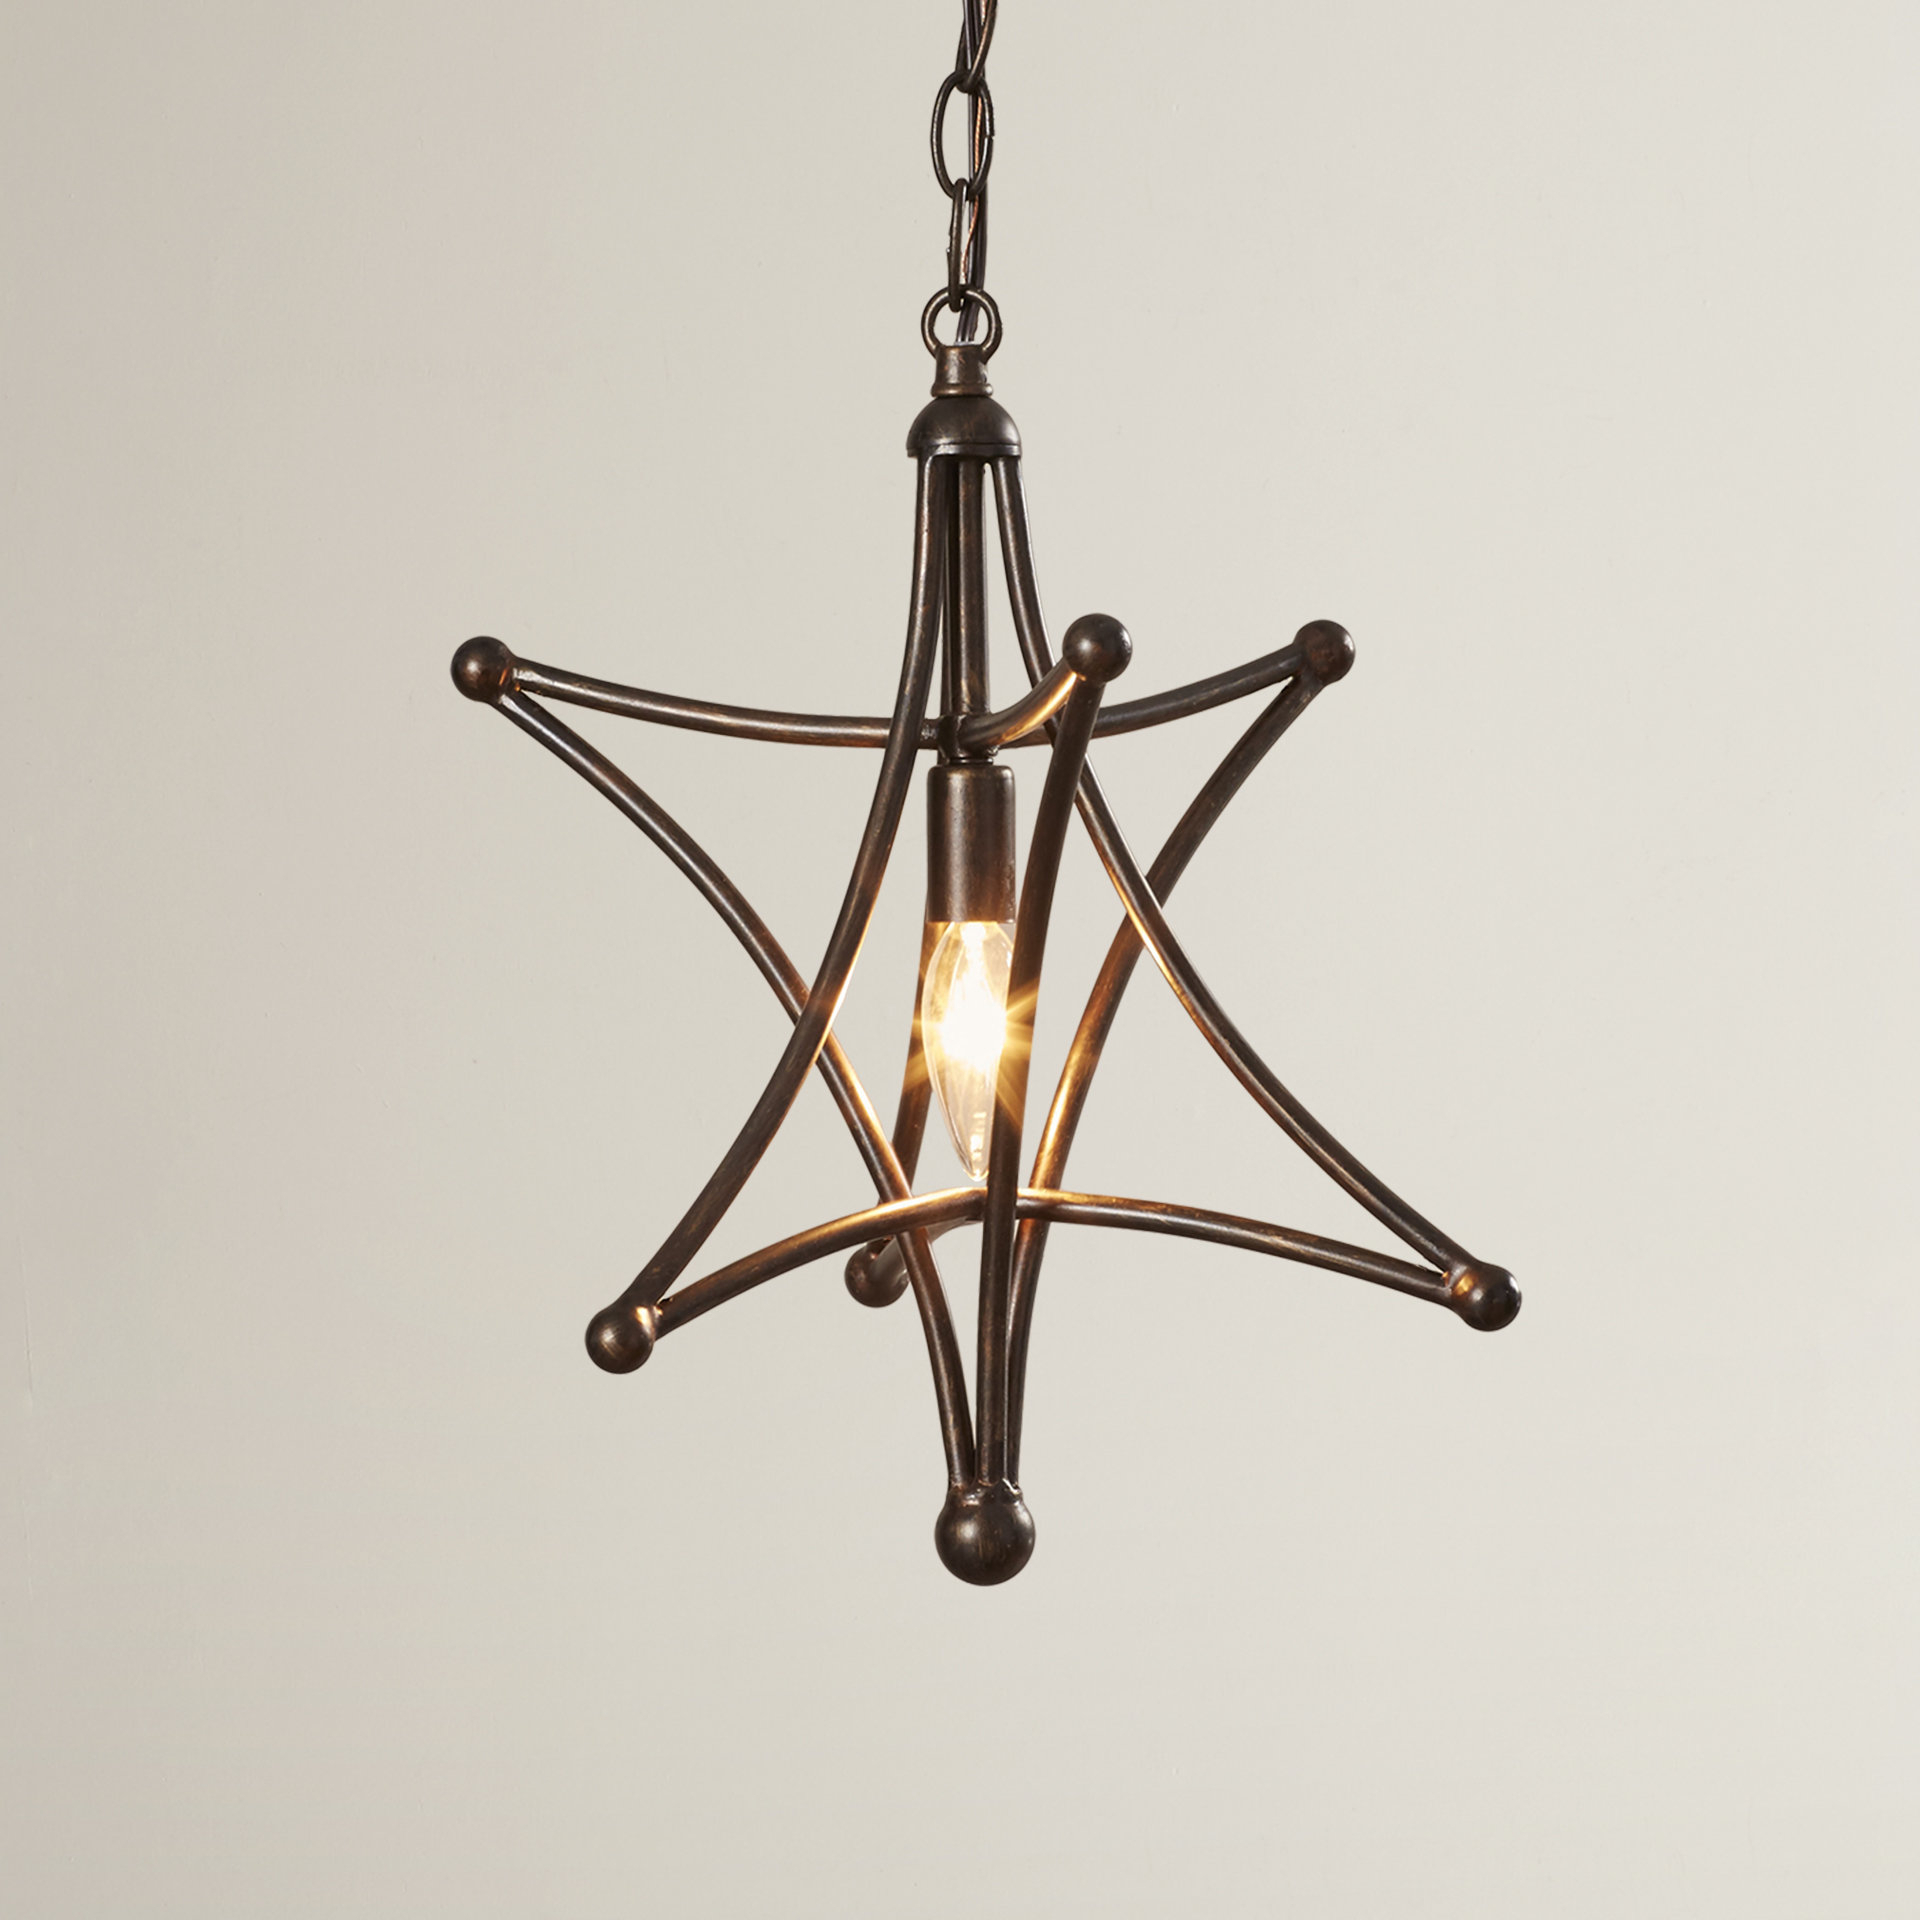 Cynthia 1 Light Single Star Pendant Pertaining To 1 Light Single Star Pendants (View 8 of 30)